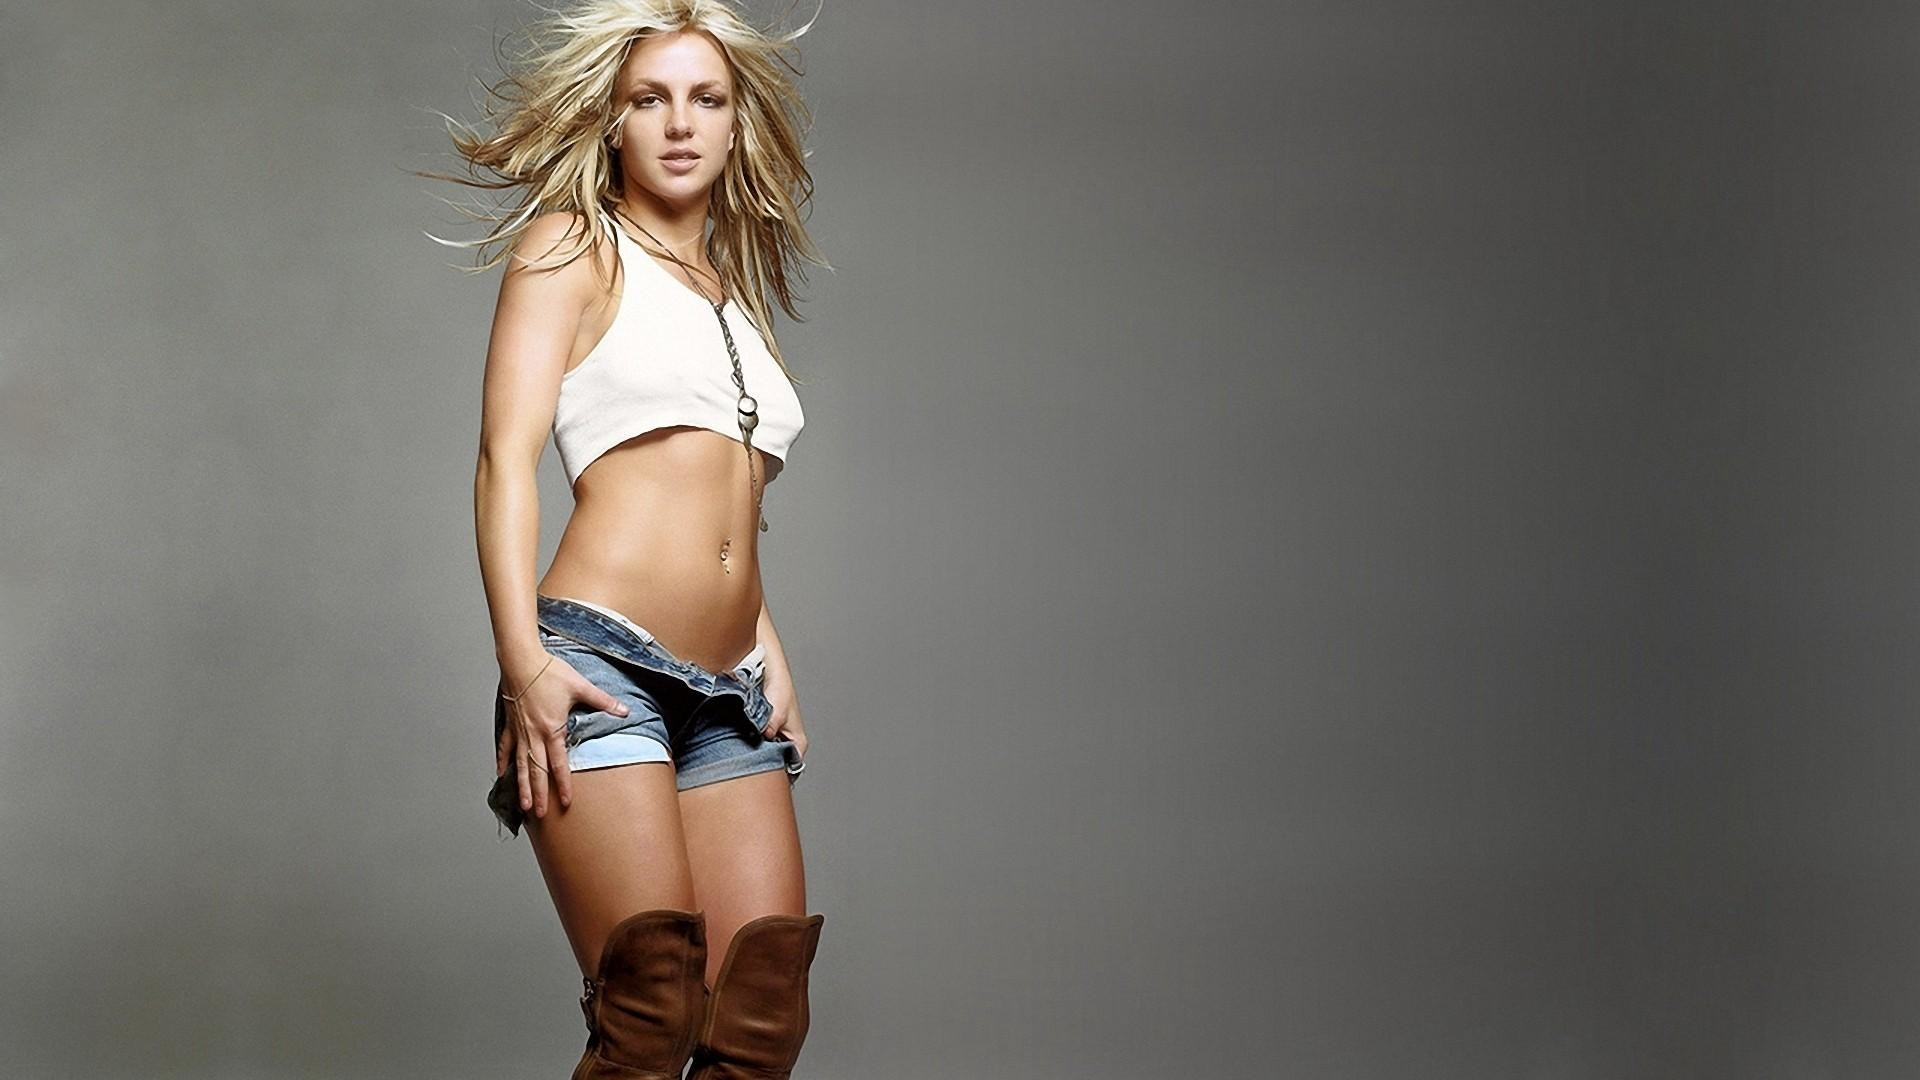 1920x1080 Britney Spears Hot Wallpaper